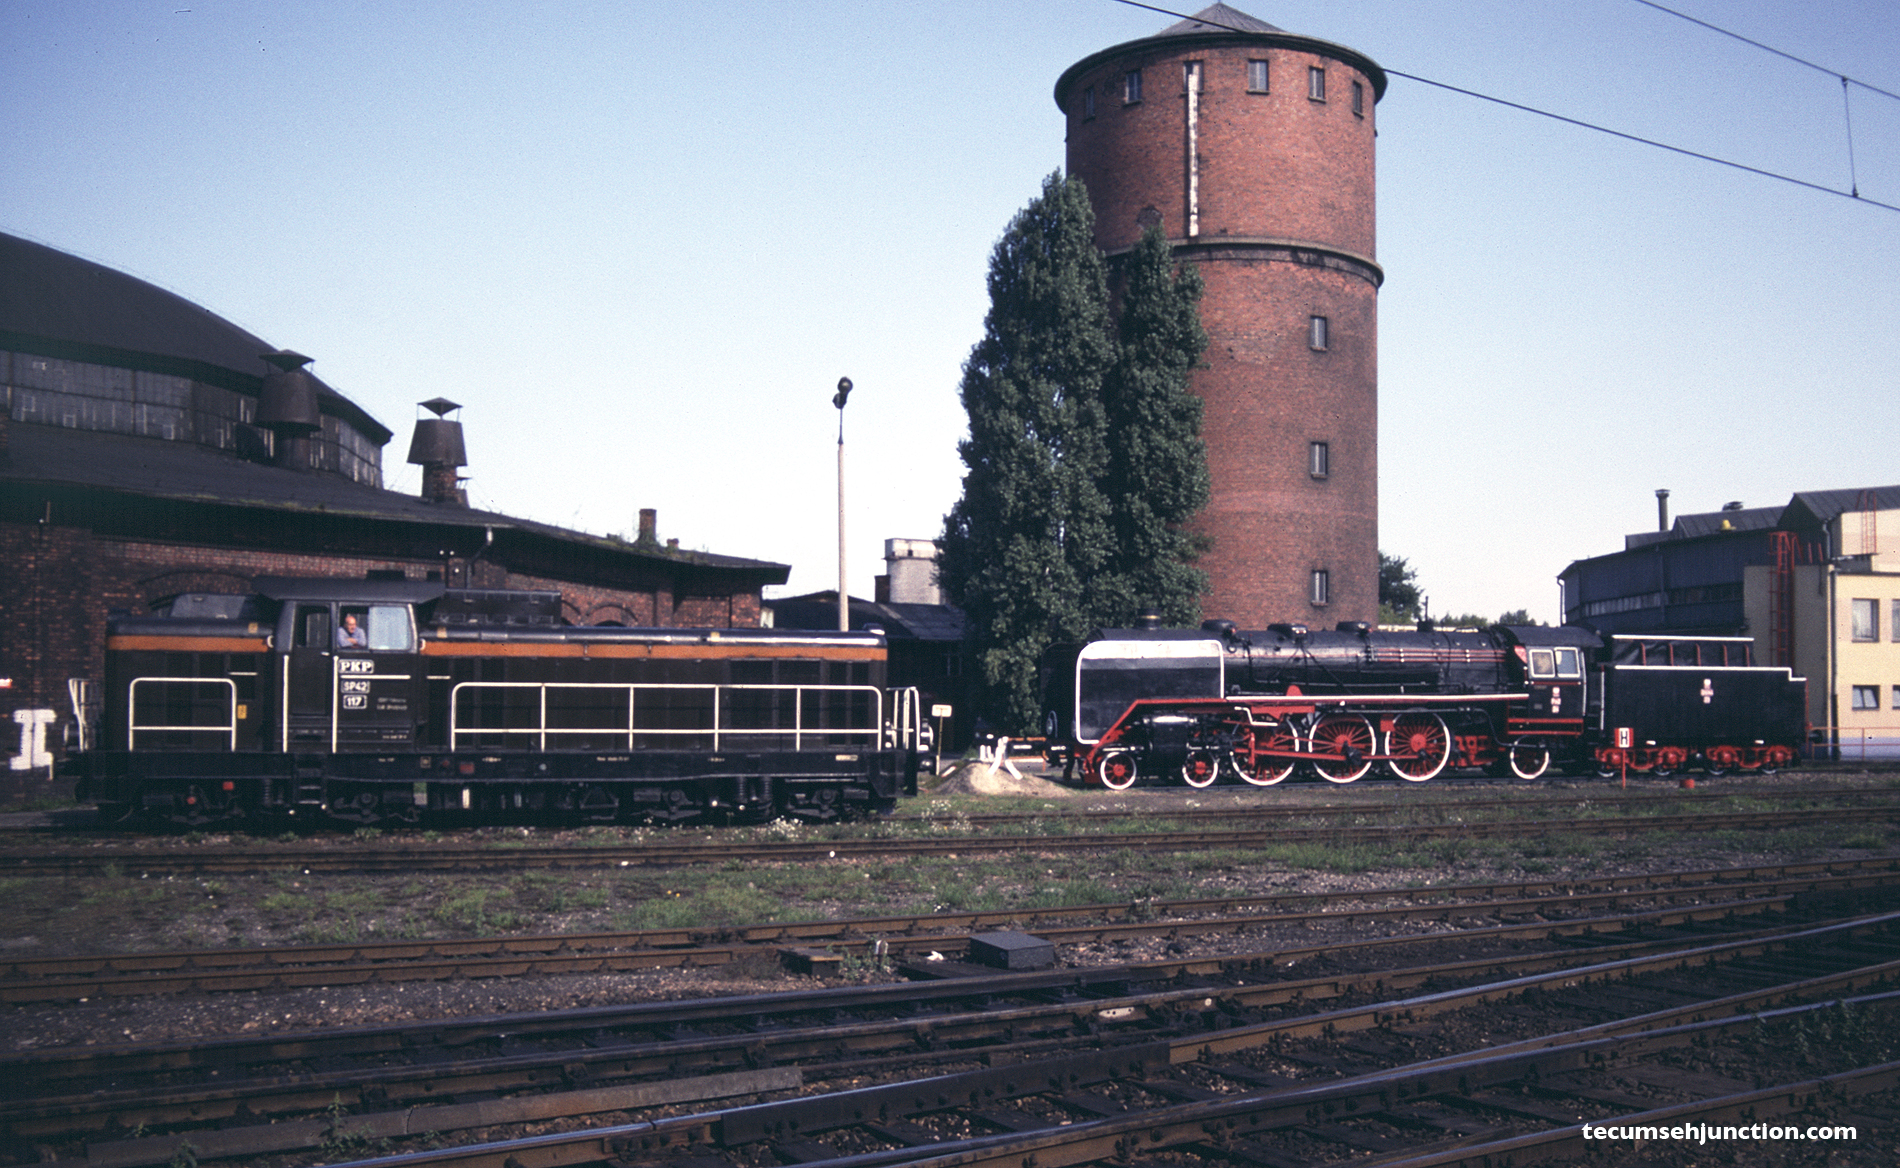 SP42 and Pm2 at Bydgoszcz